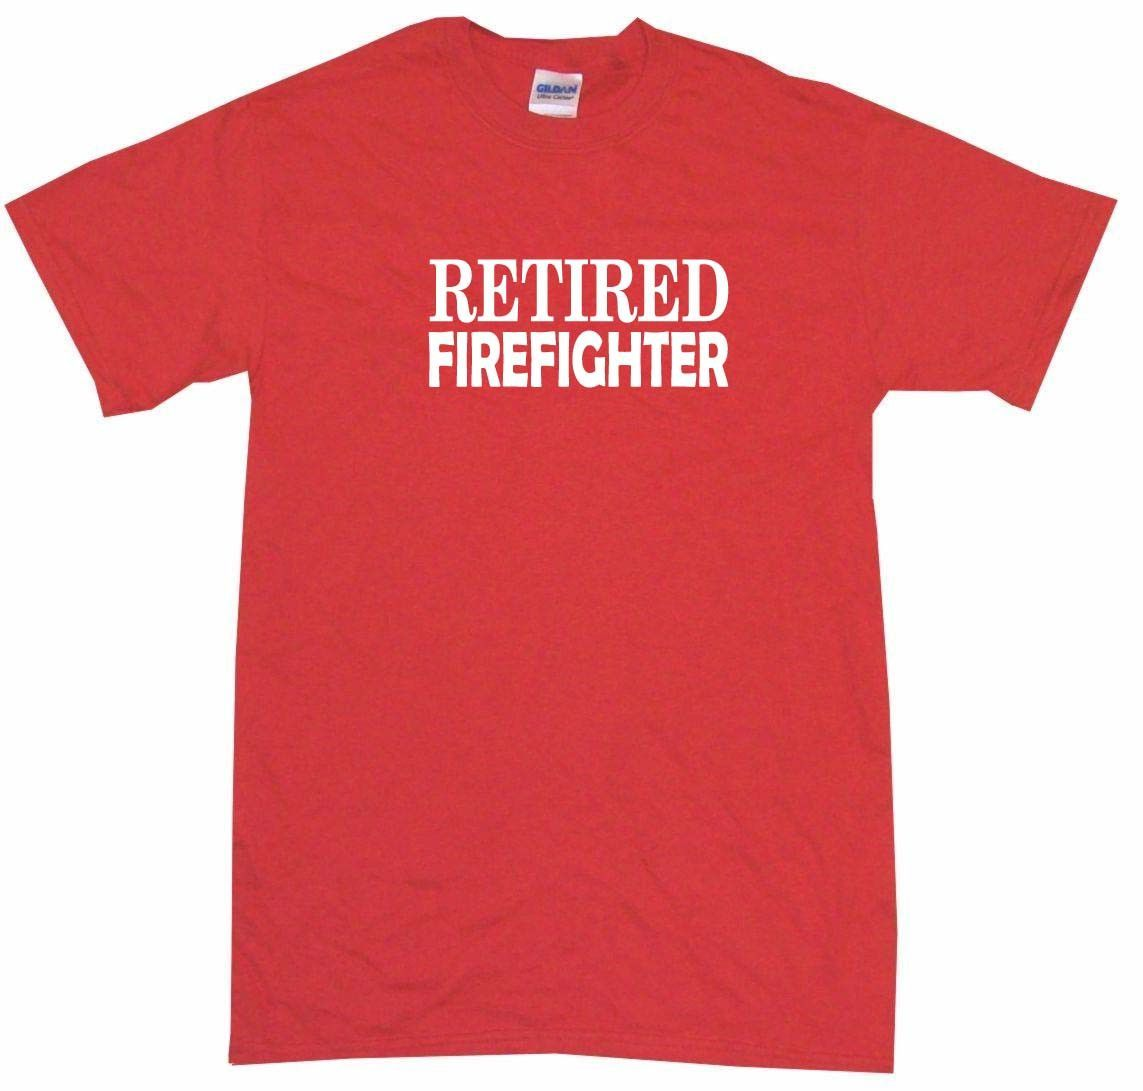 Retired Firefighter Tee Shirt OR Hoodie Sweat